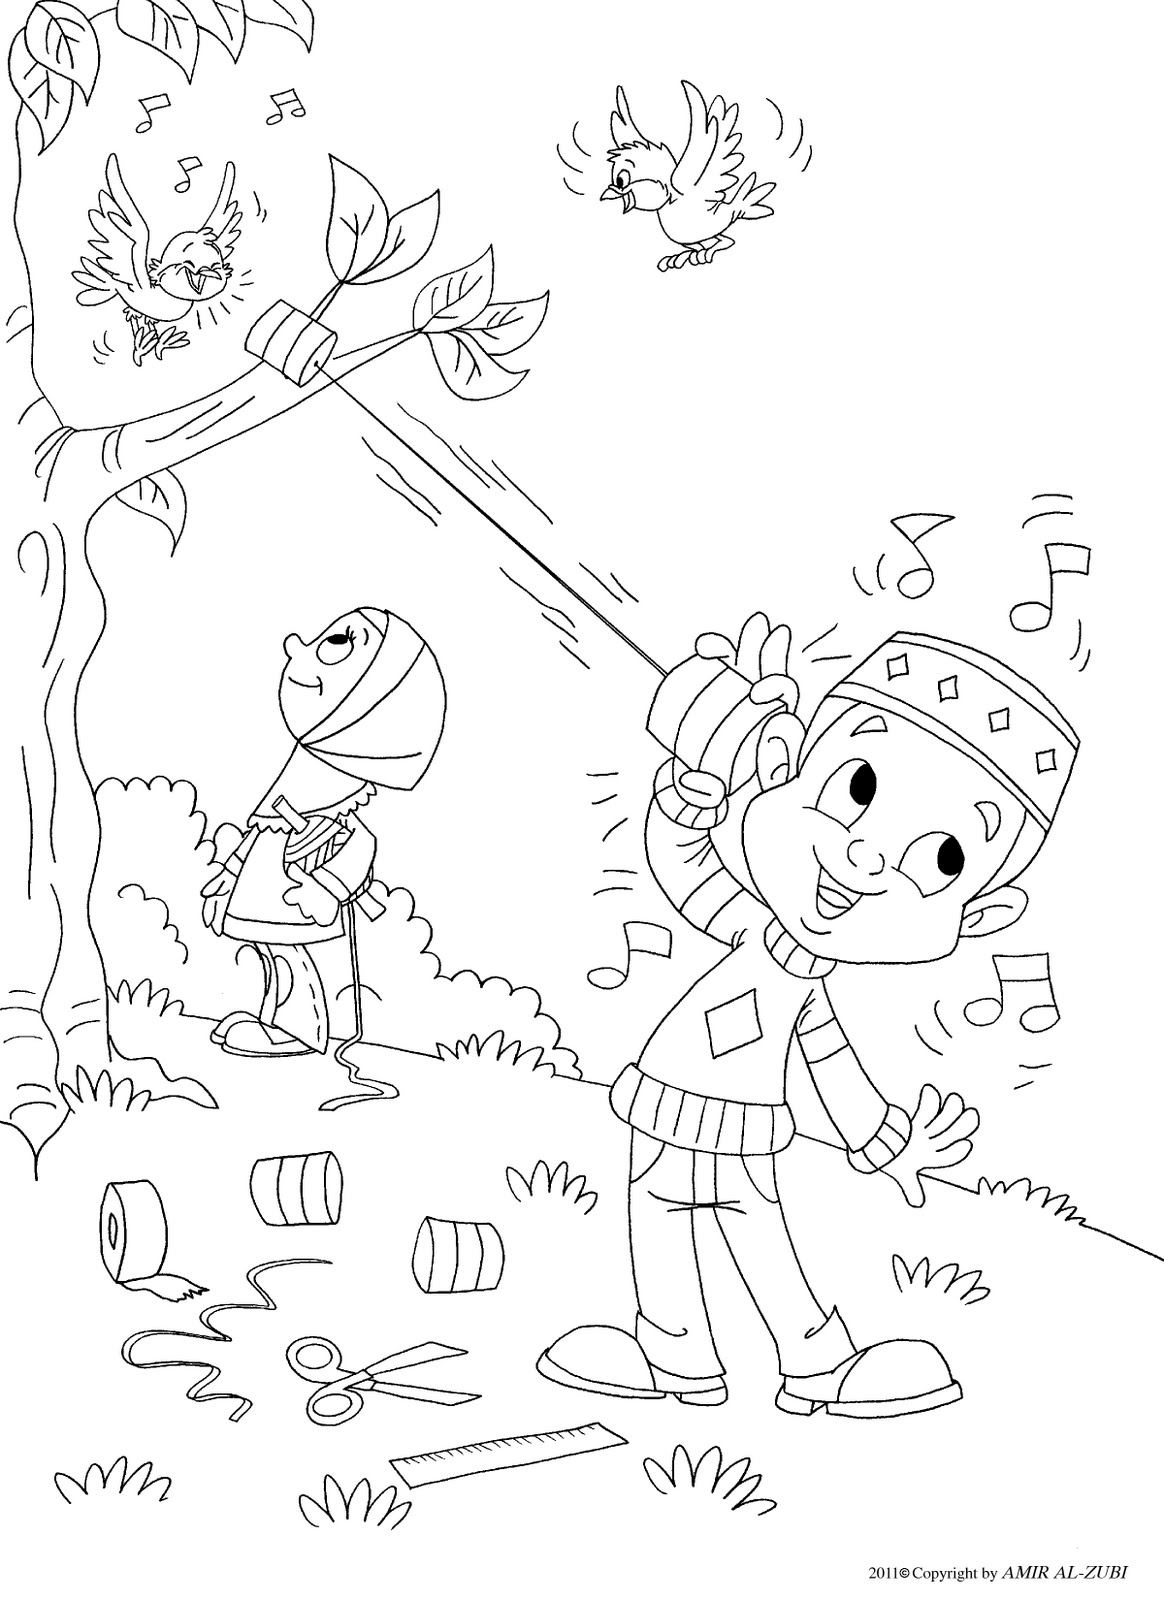 Printable Islamic Coloring Pages For Kids Sketch Coloring Page